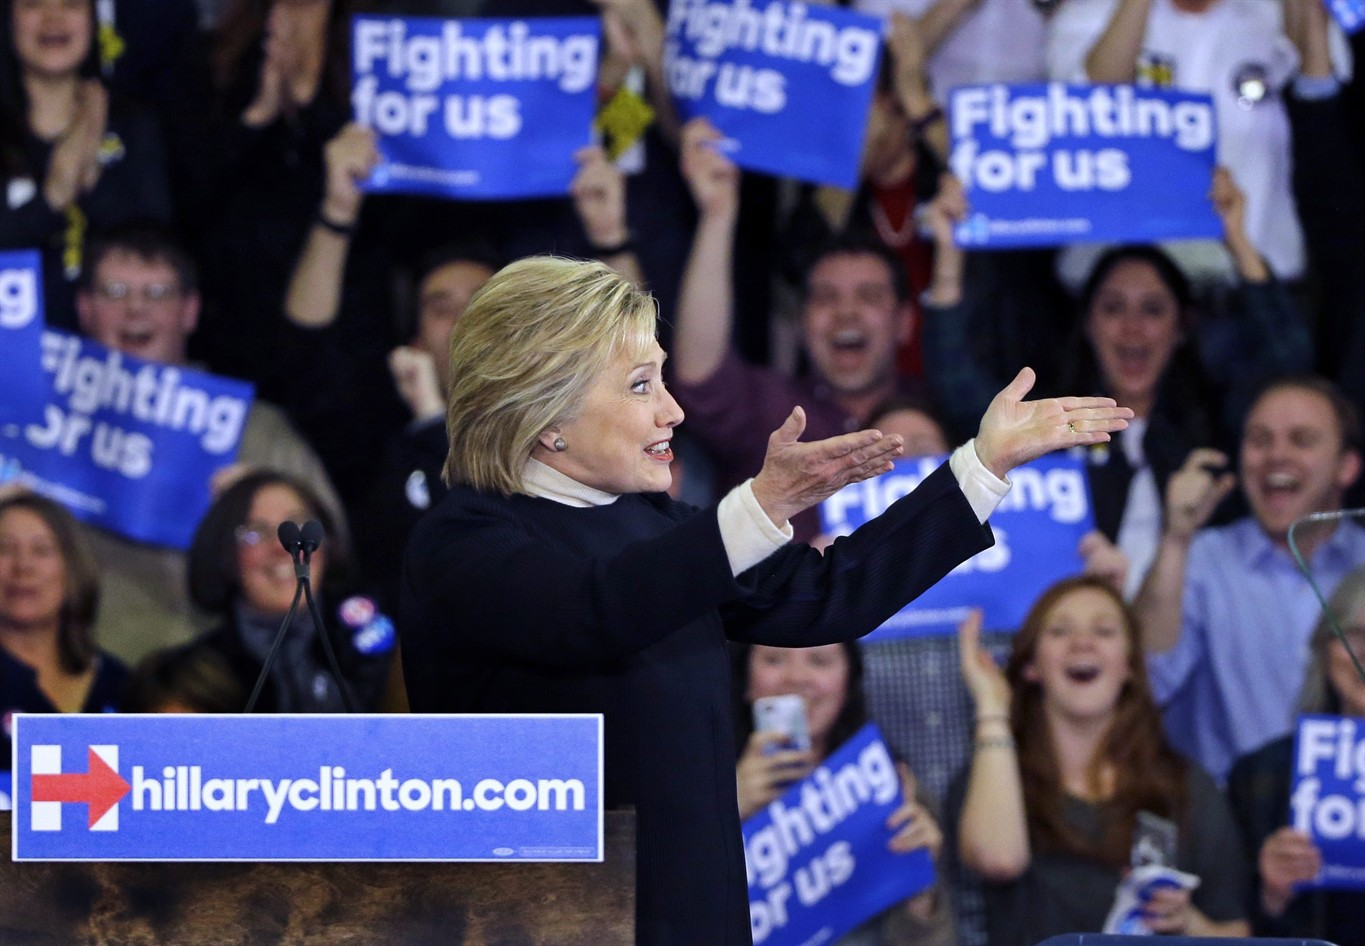 ... new hampshire presidential primary campaign rally tuesday feb 9 2016